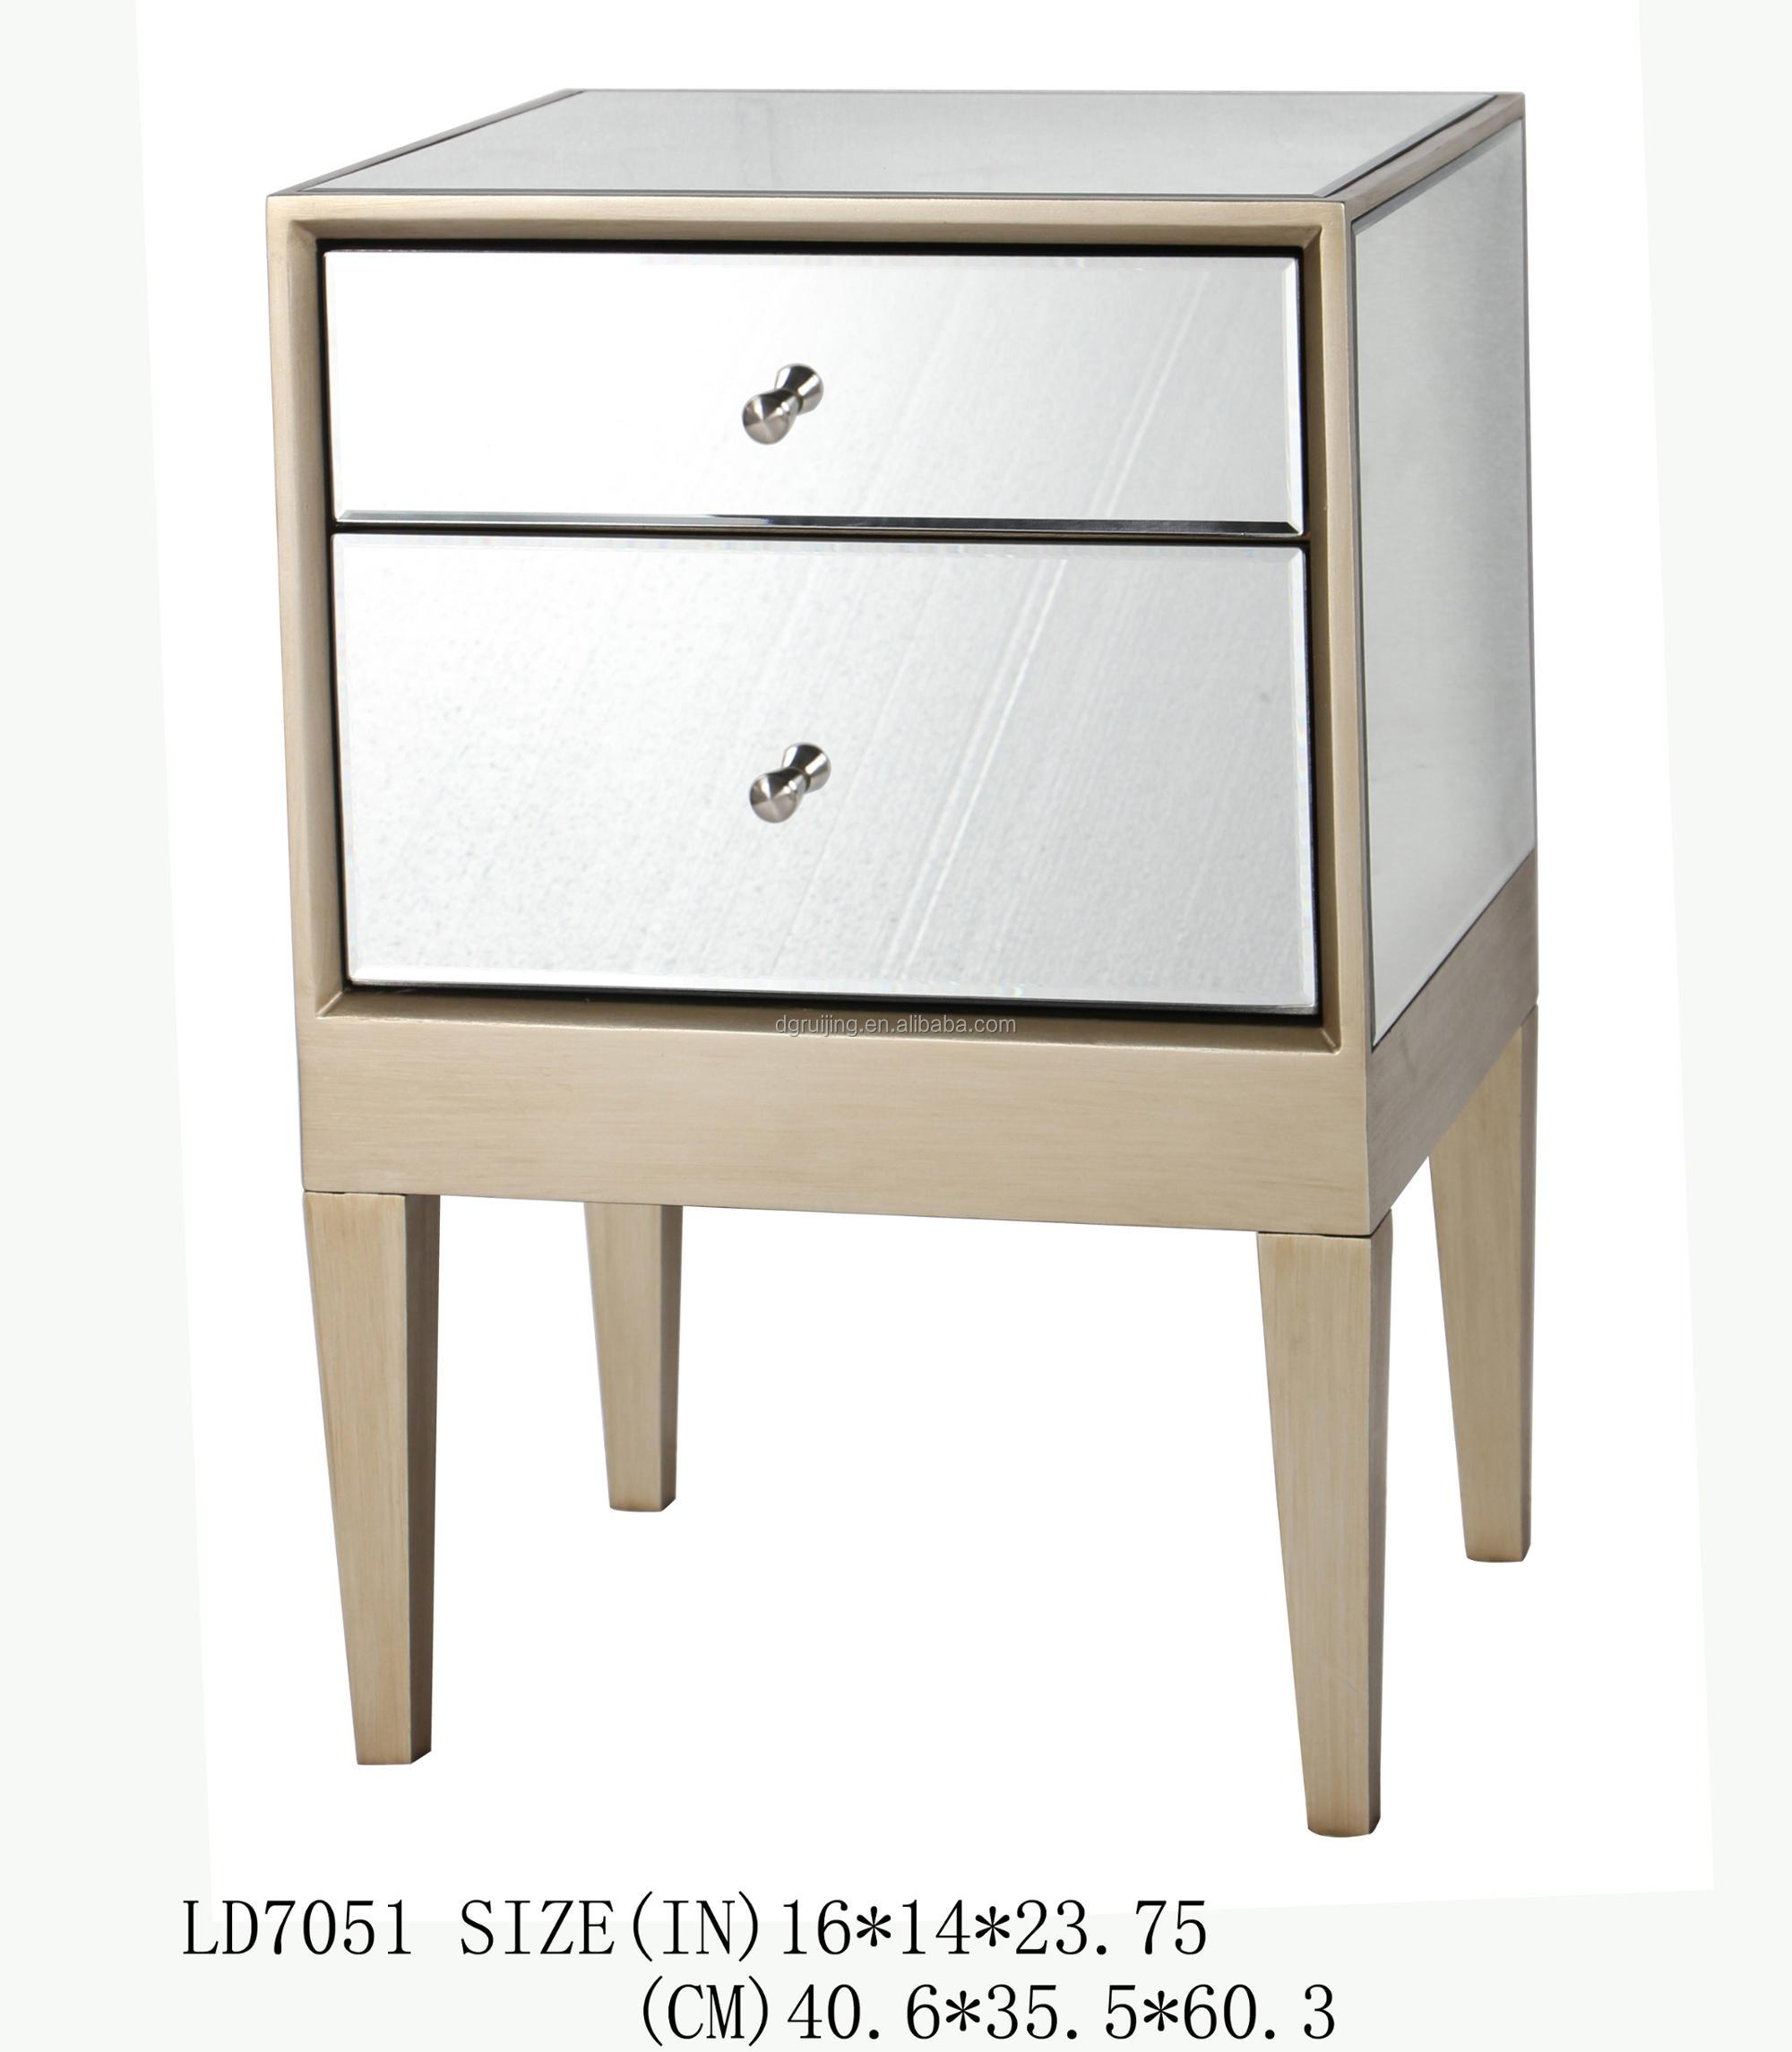 Venetian Mirrored Bedside Table, Venetian Mirrored Bedside Table Suppliers And